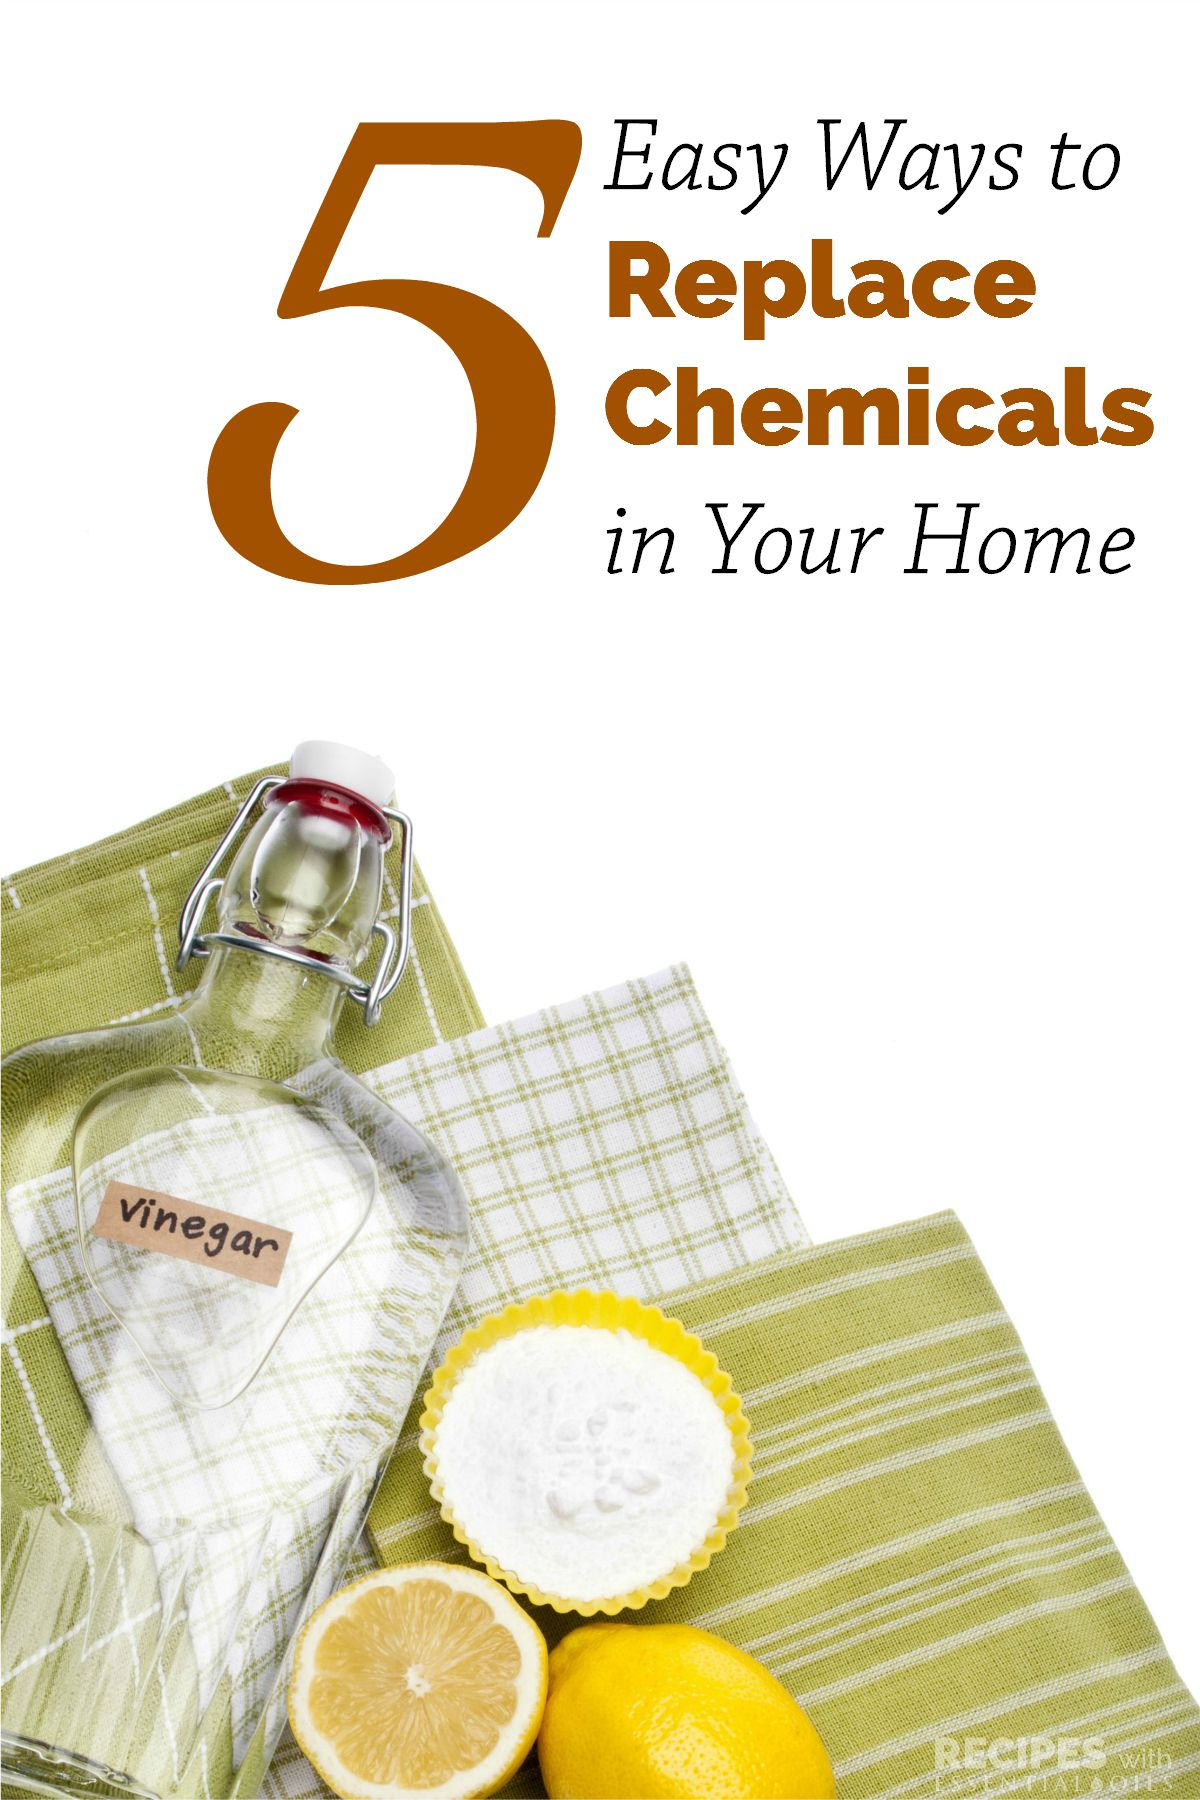 5 Easy Ways to Replace Chemicals in Your Home | RecipesWithEssentialOils.com